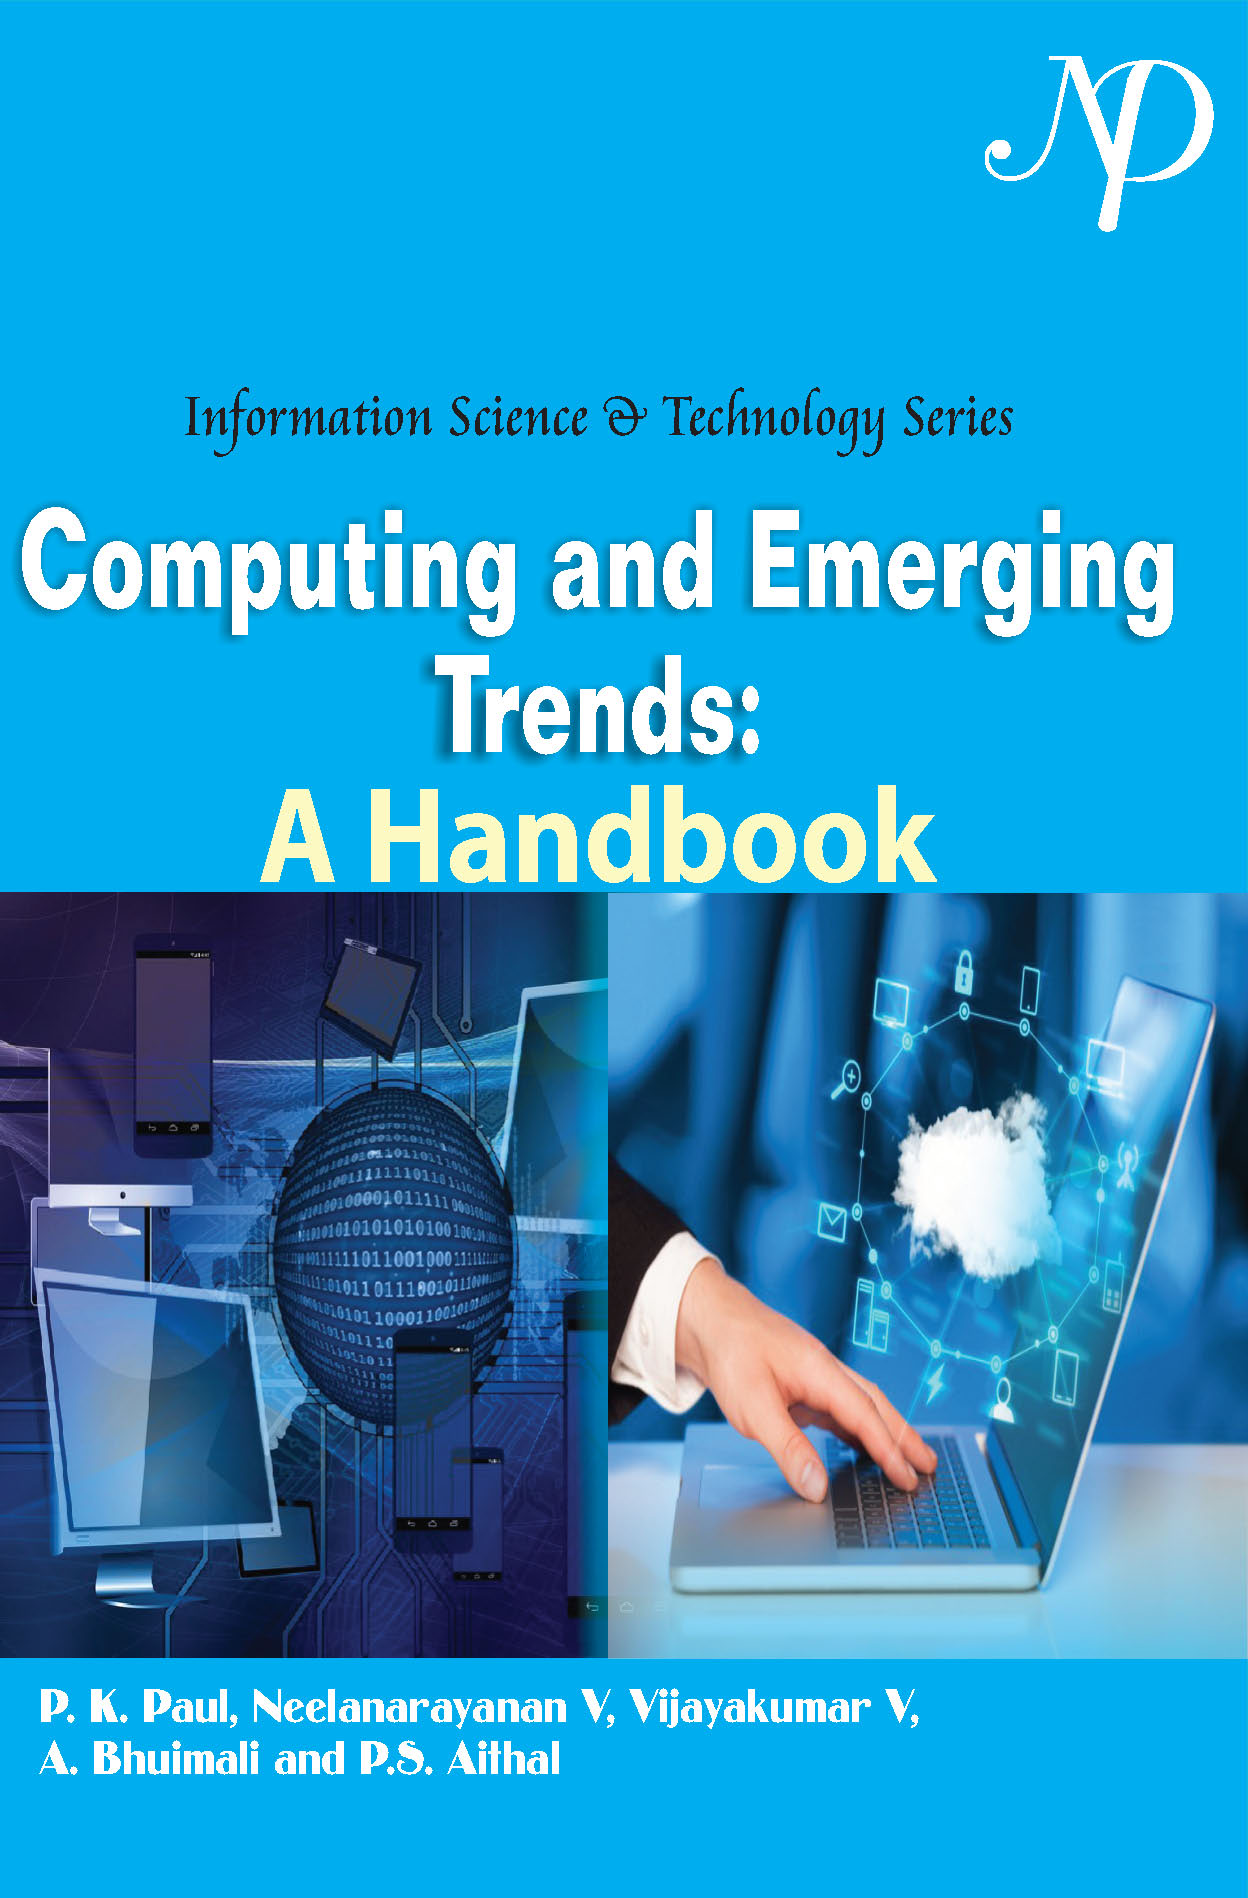 computing emerging trande cover page.jpg